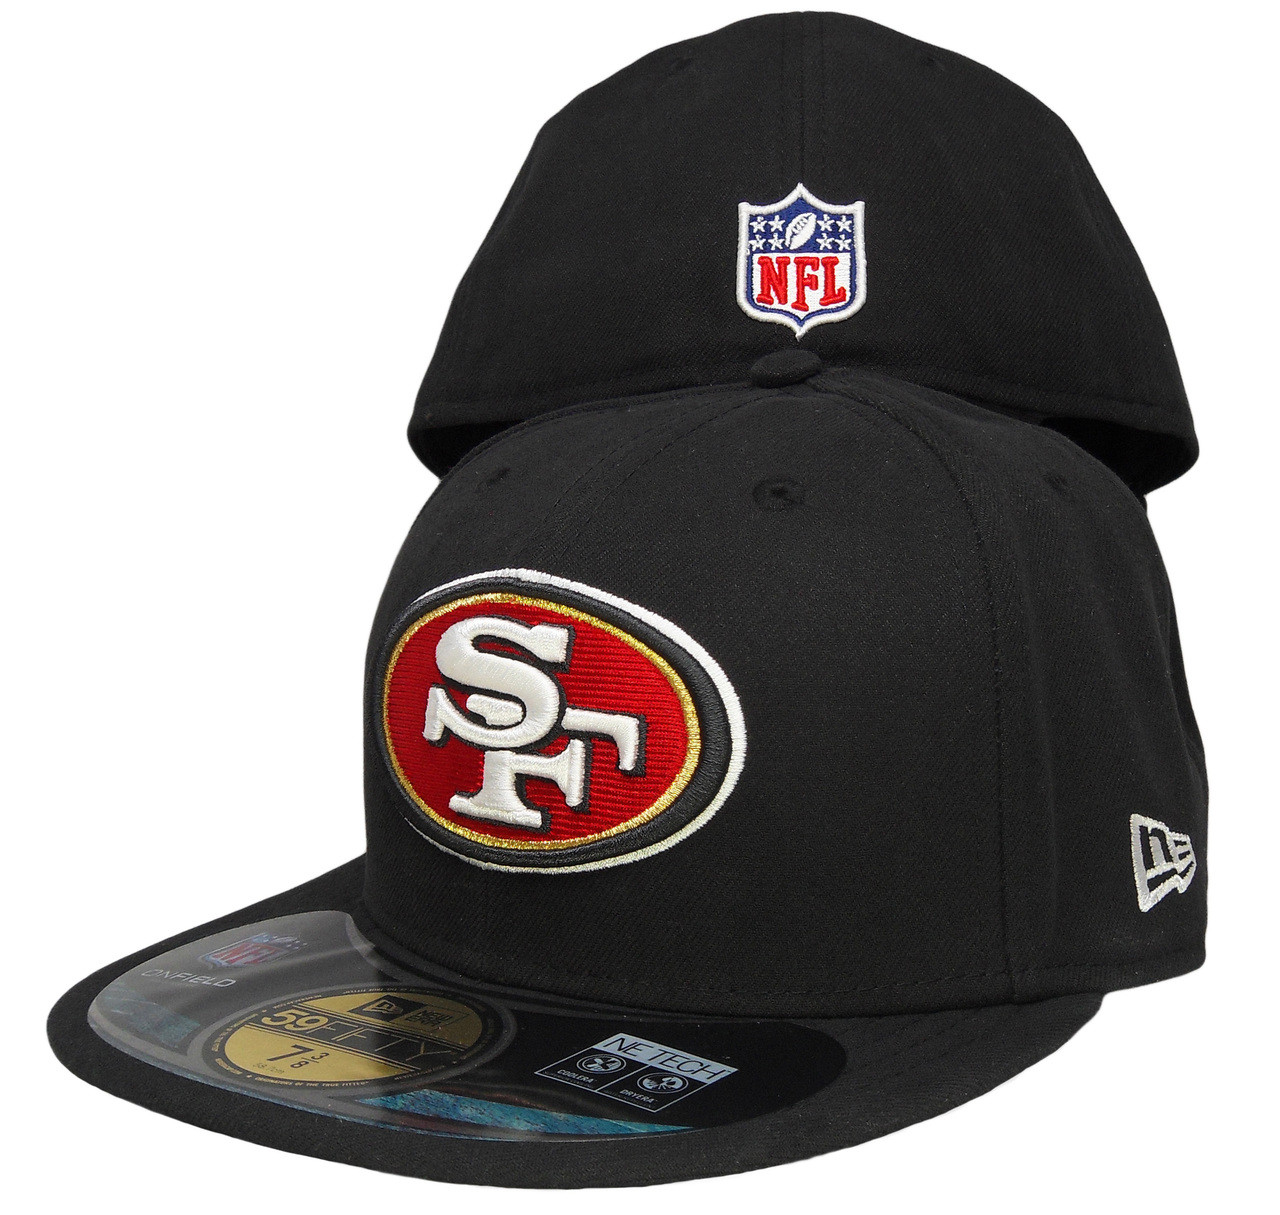 sports shoes 544d6 2cd28 San Francisco 49ers New Era 59Fifty Onfield Fitted Hat - Black, Red, Gold -  ECapsUnlimited.com